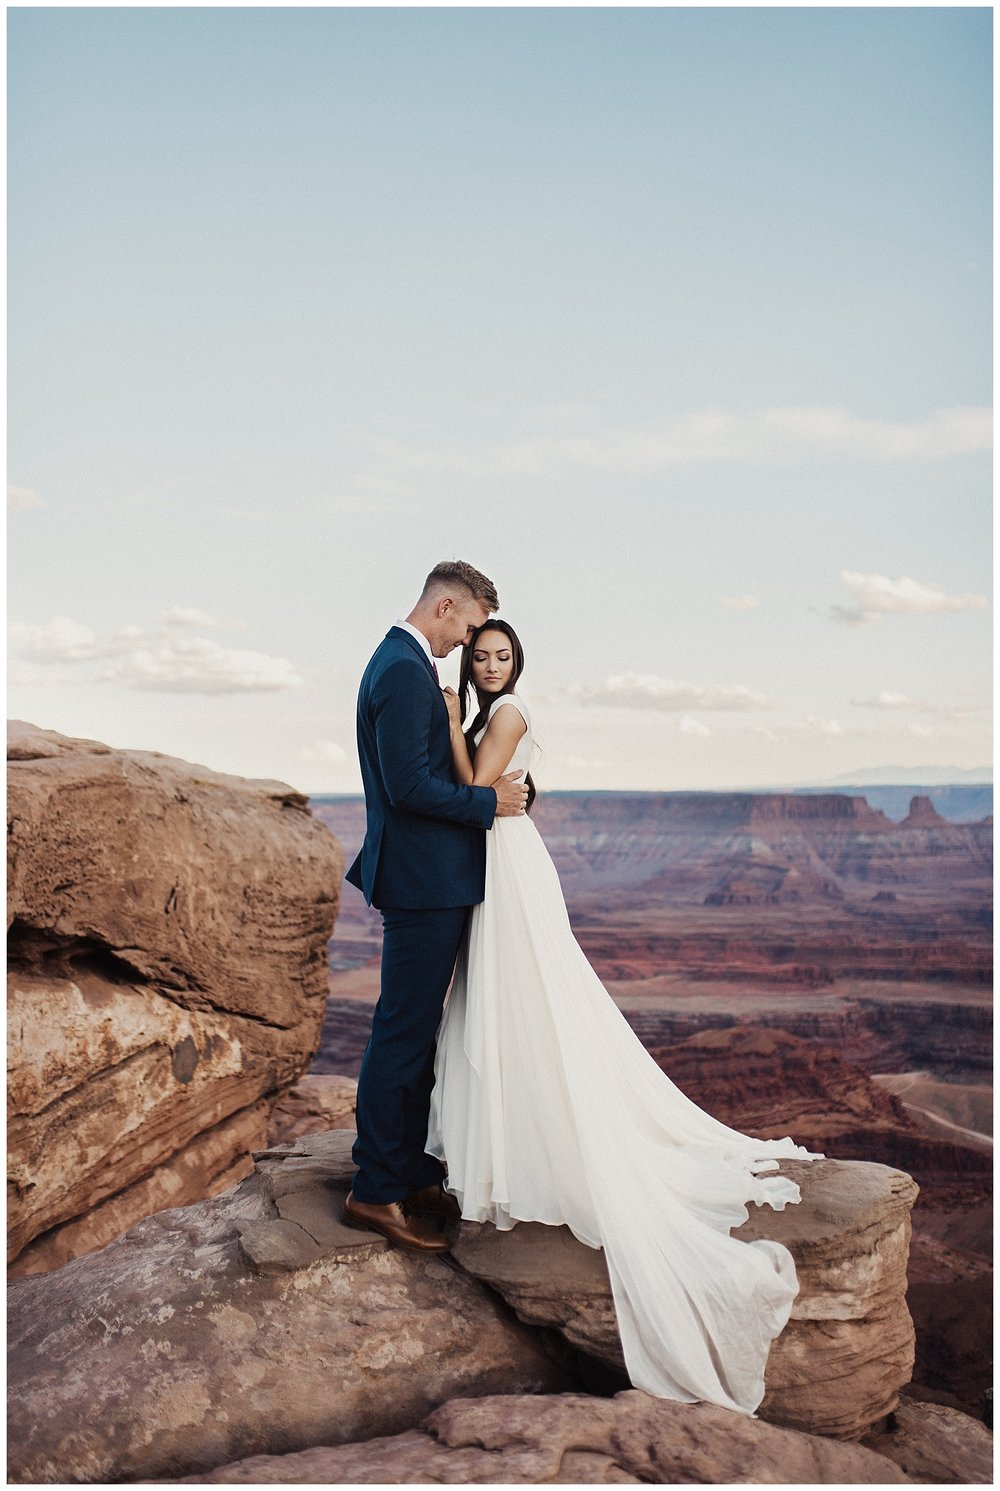 Wedding Bridals at Dead Horse Point